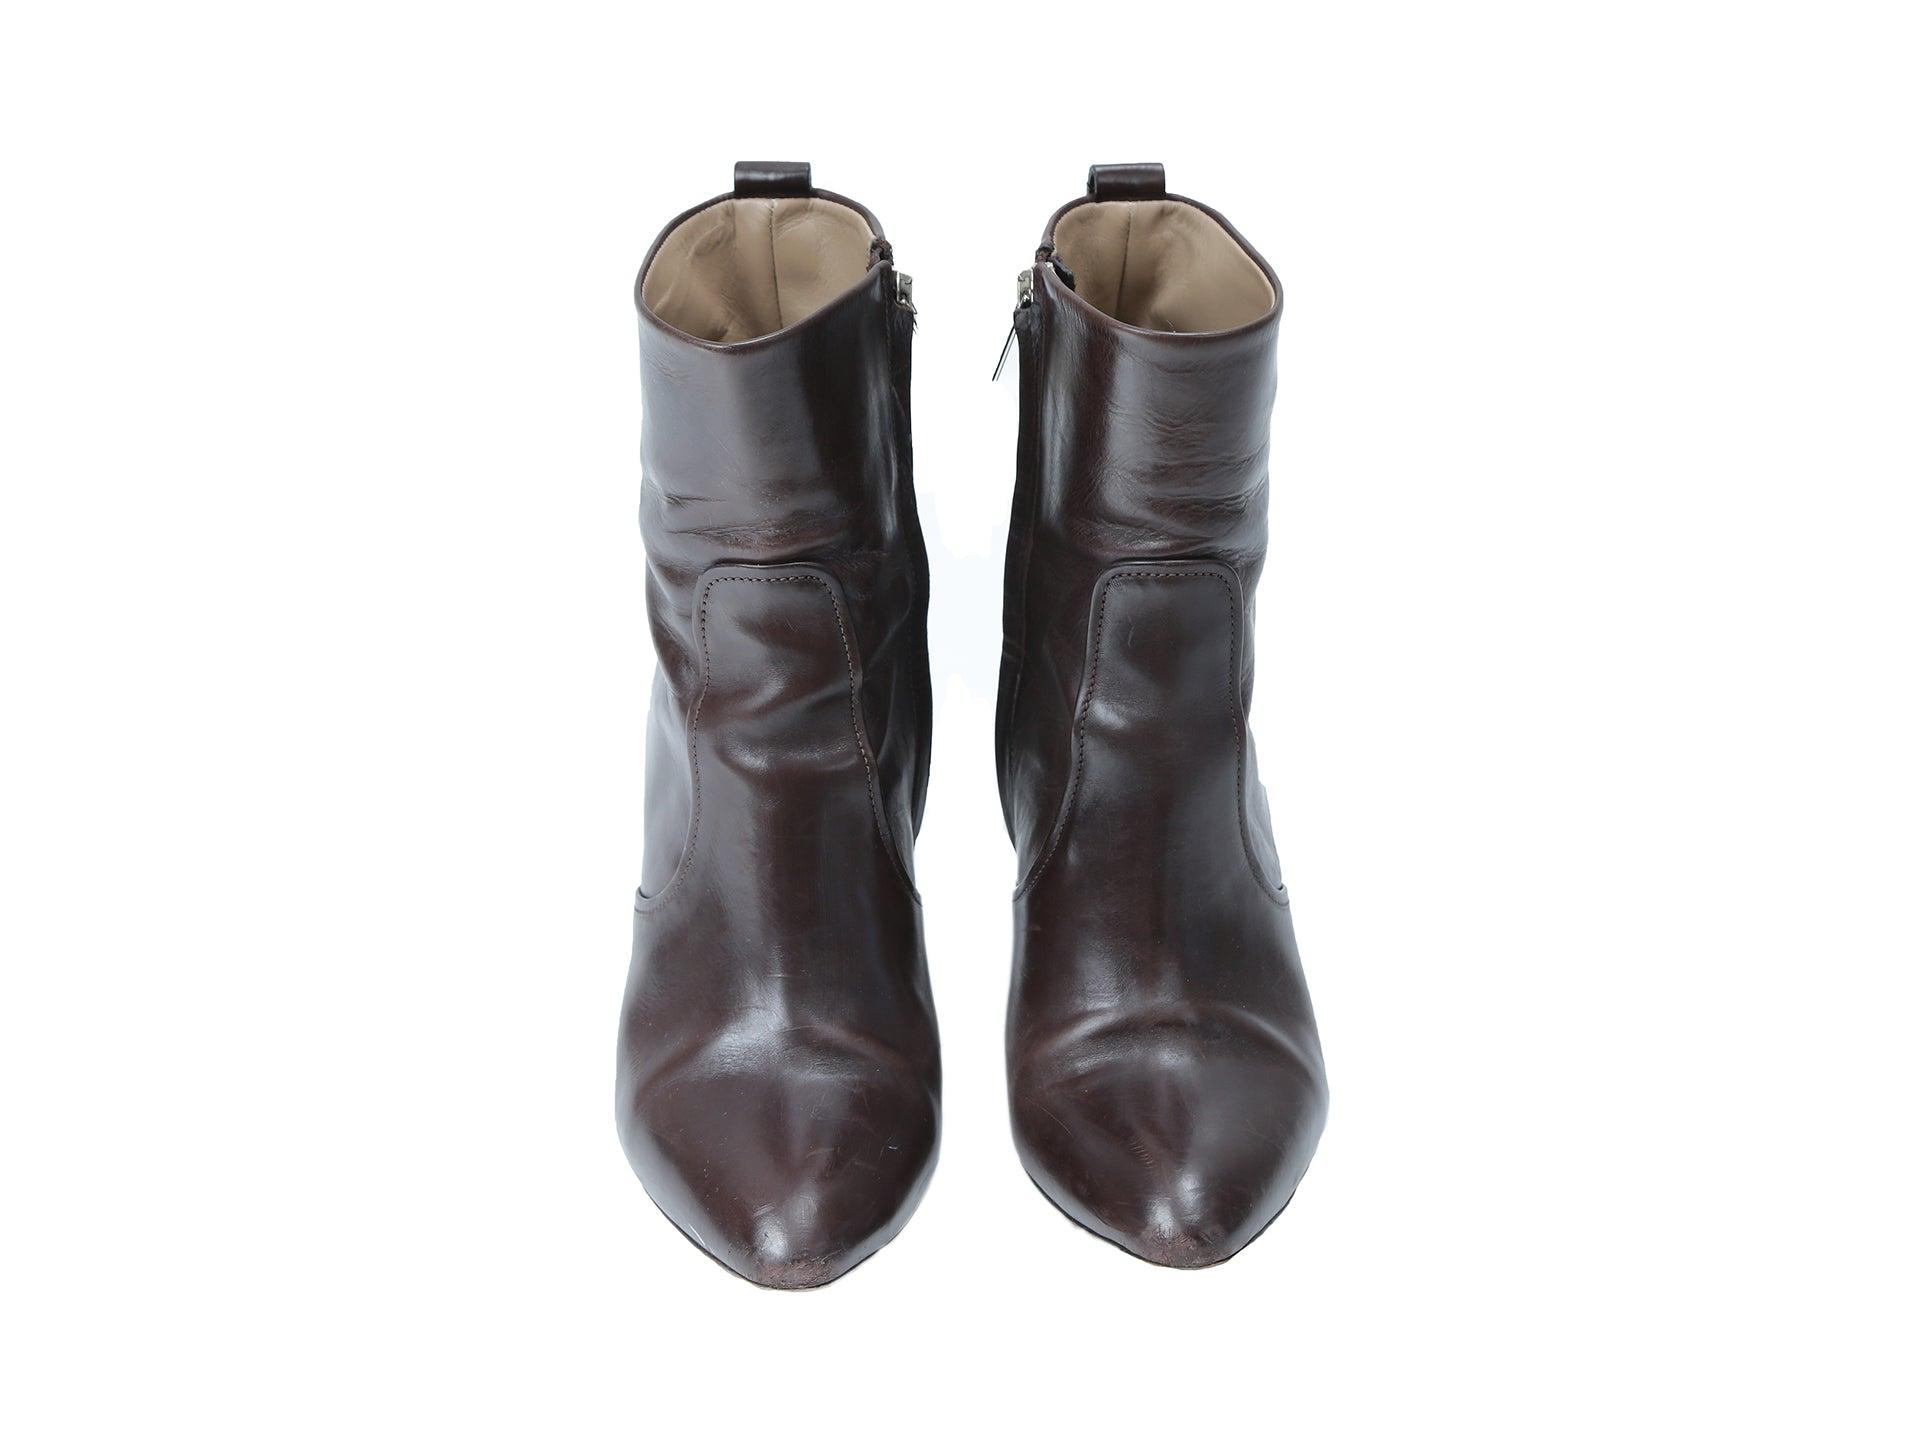 Luís Onofre Brown with Silver detail Boots Size 36 (EU)